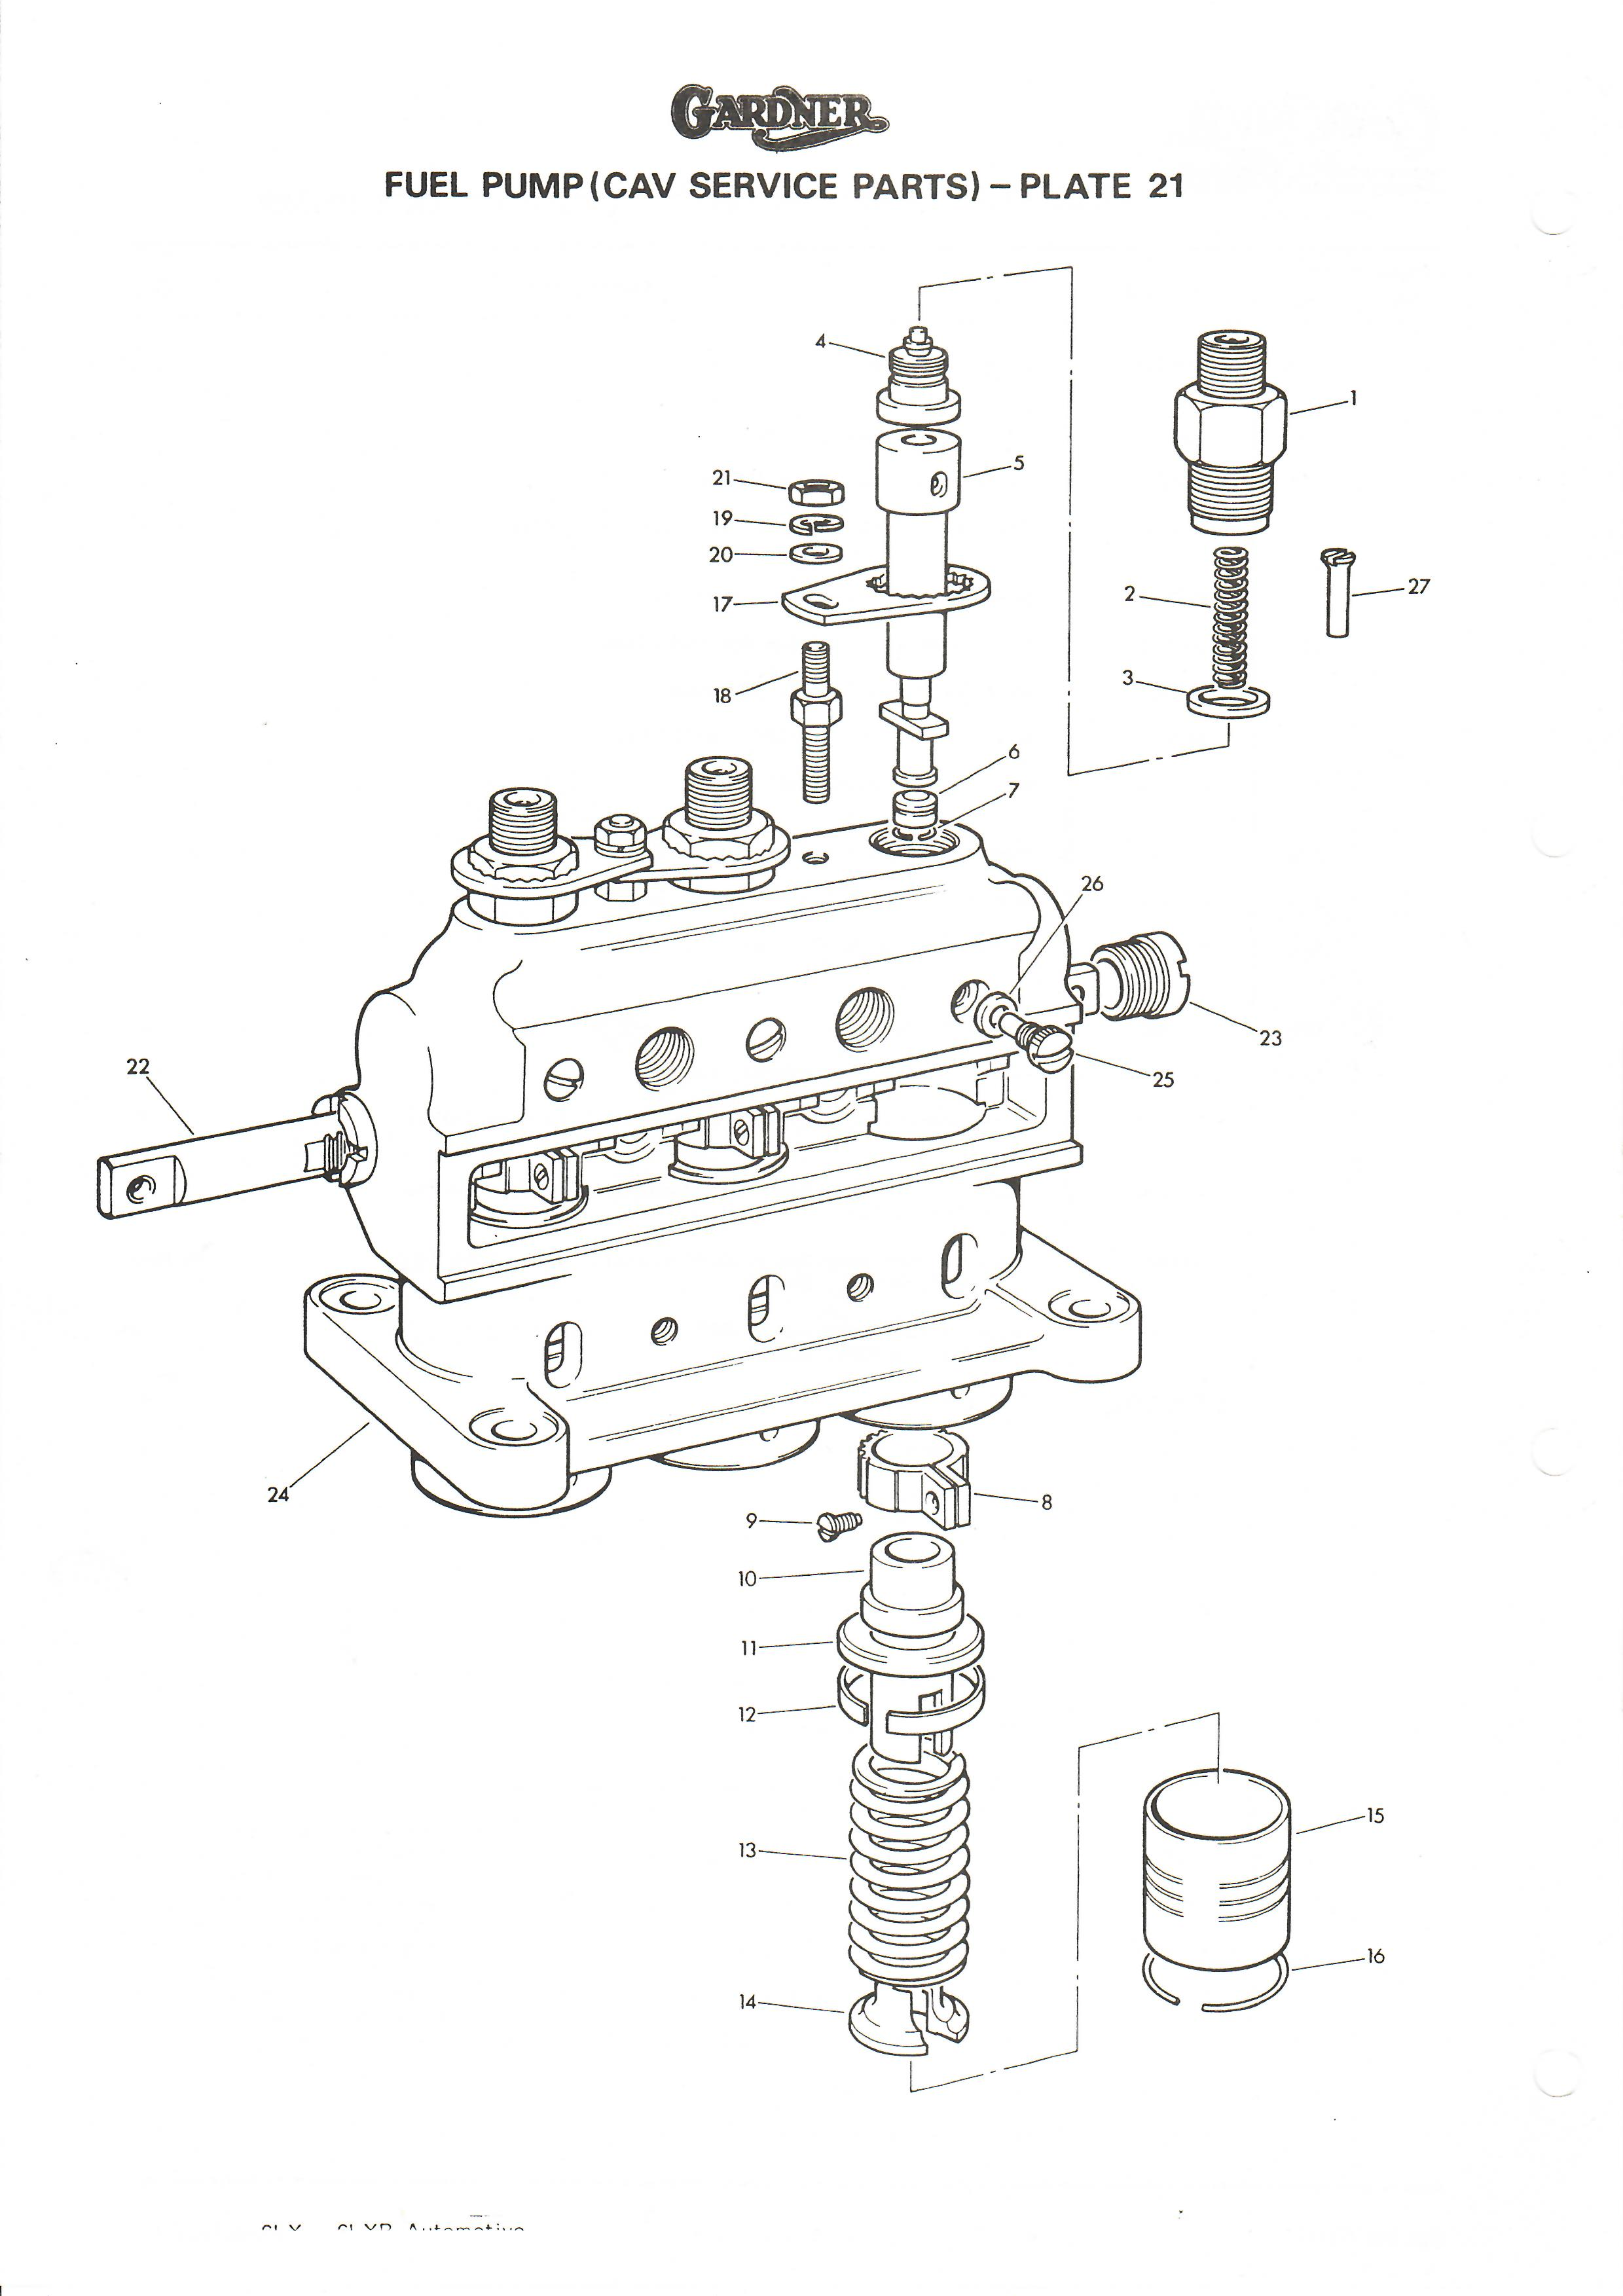 Injection Cav Diagram Pump Diesel 3233f670 Further Fuel On 2479x3507